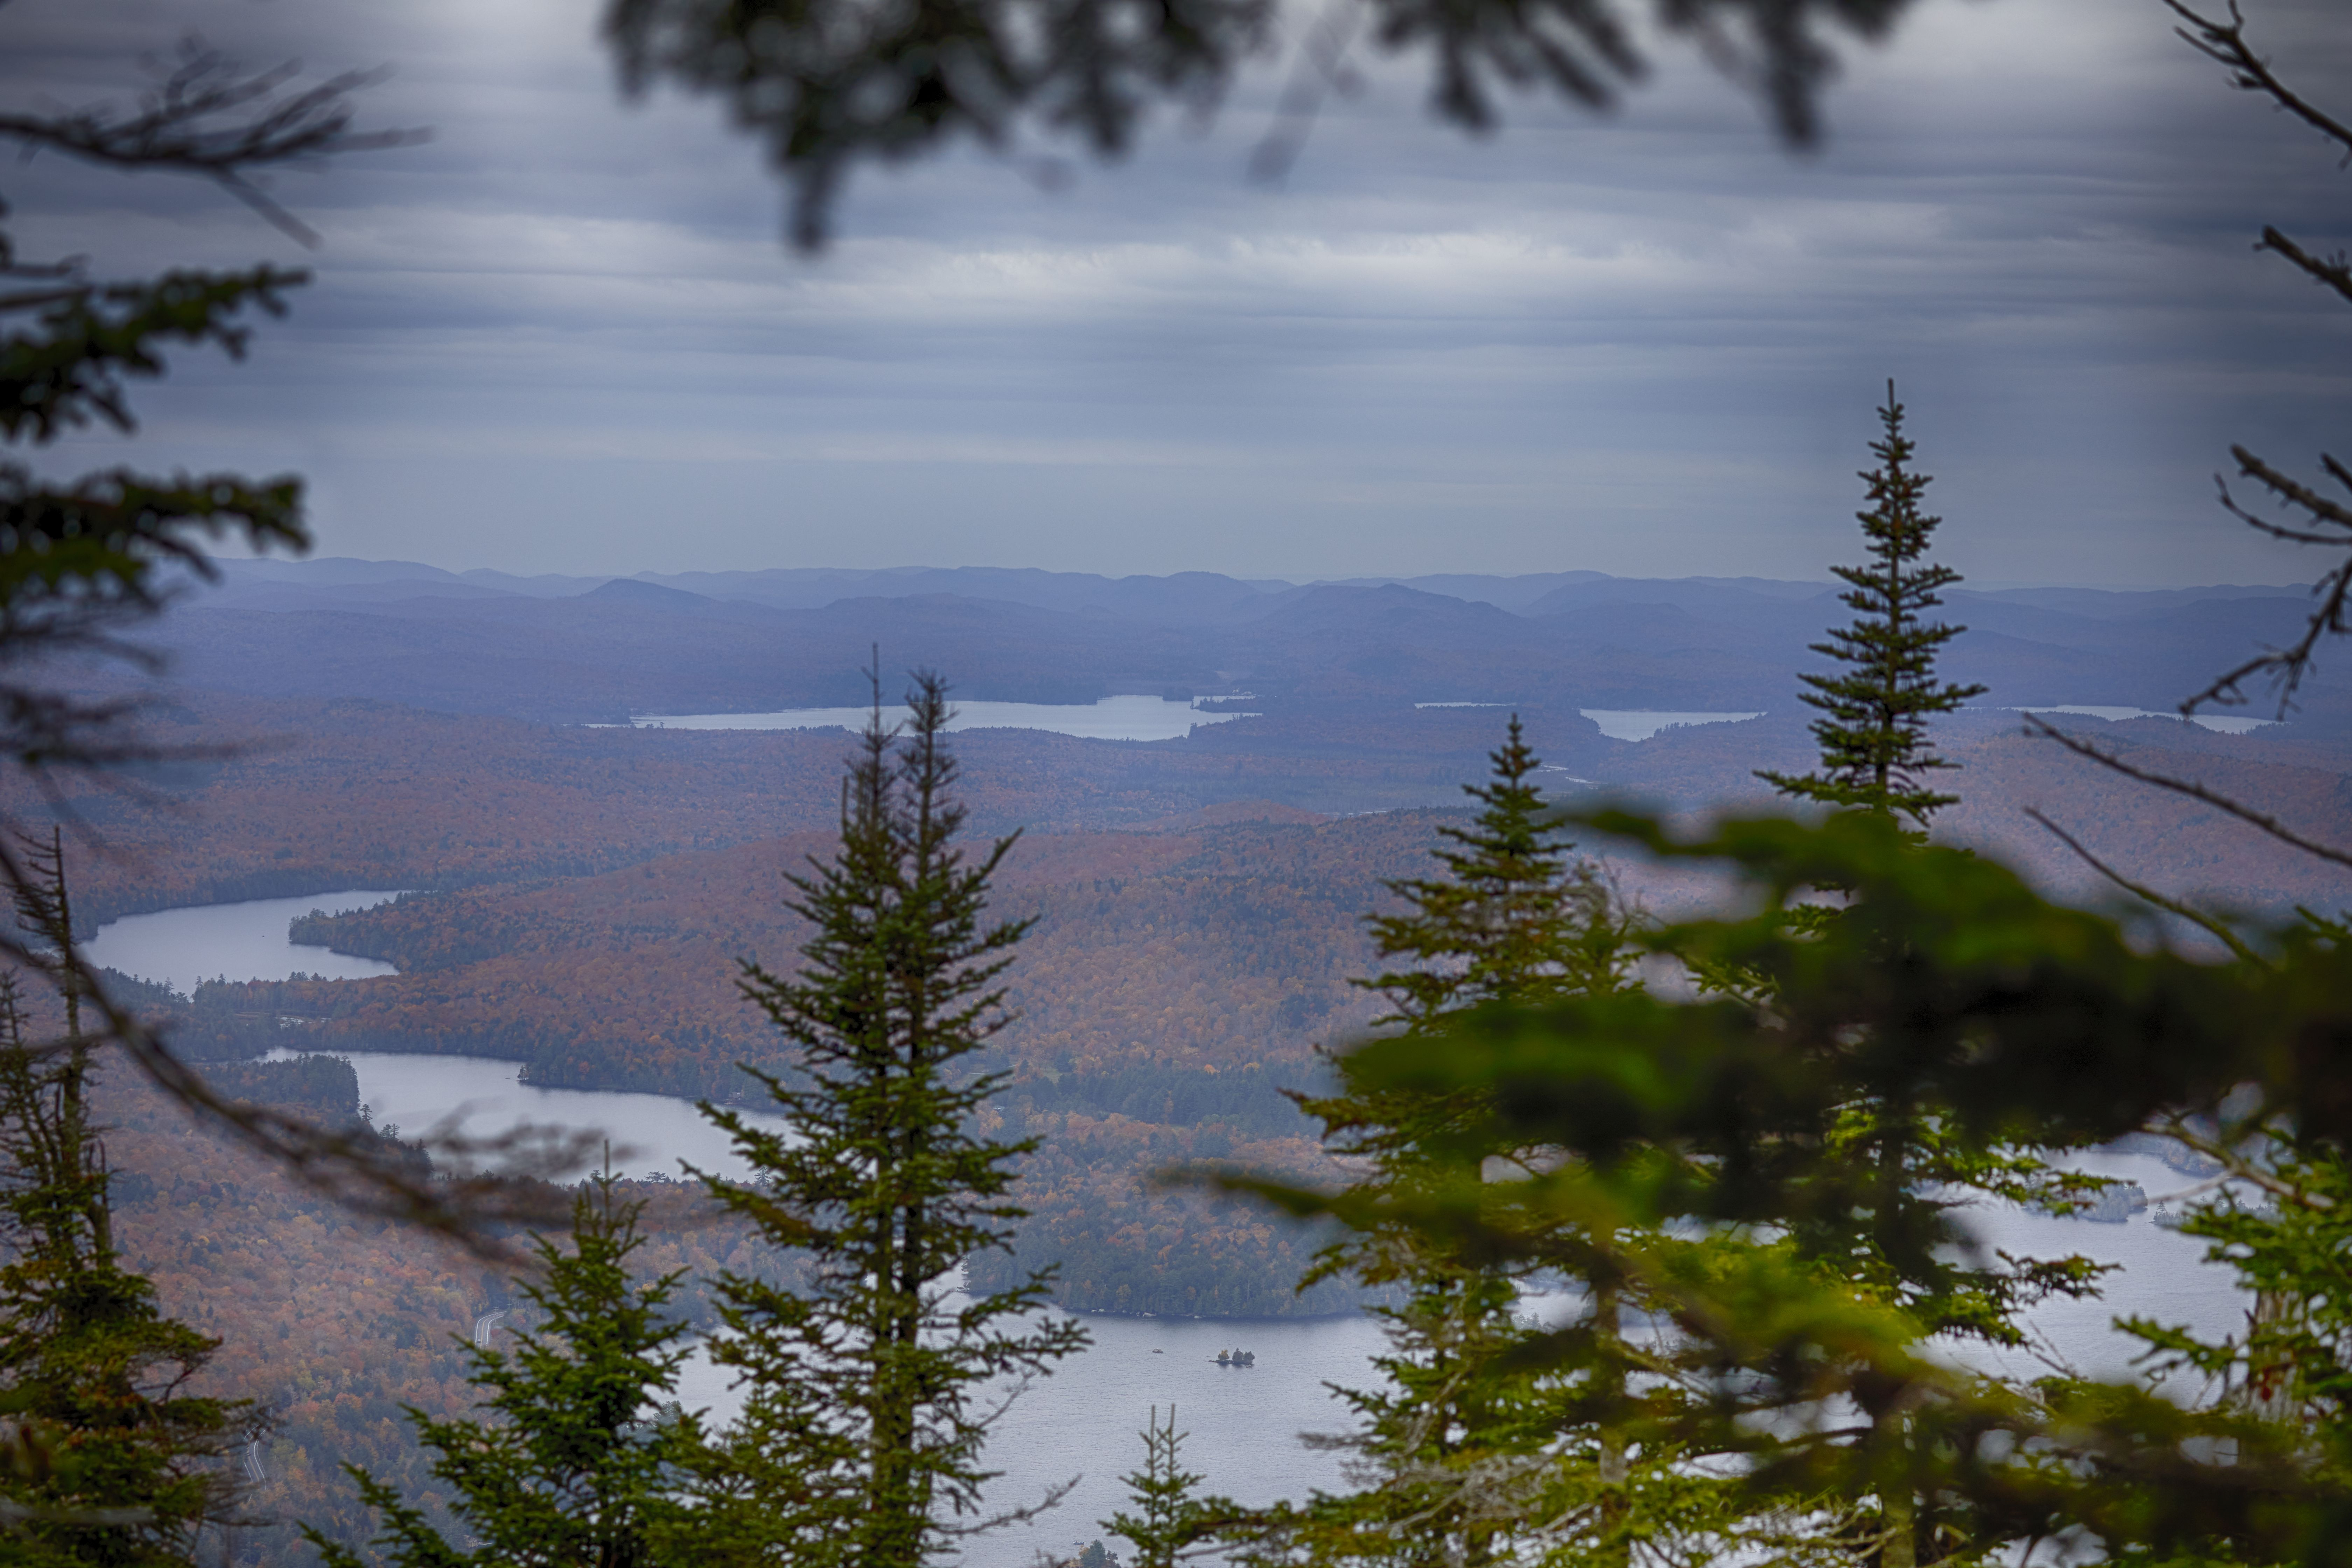 View of lakes and mountains in distance, through tree branches.